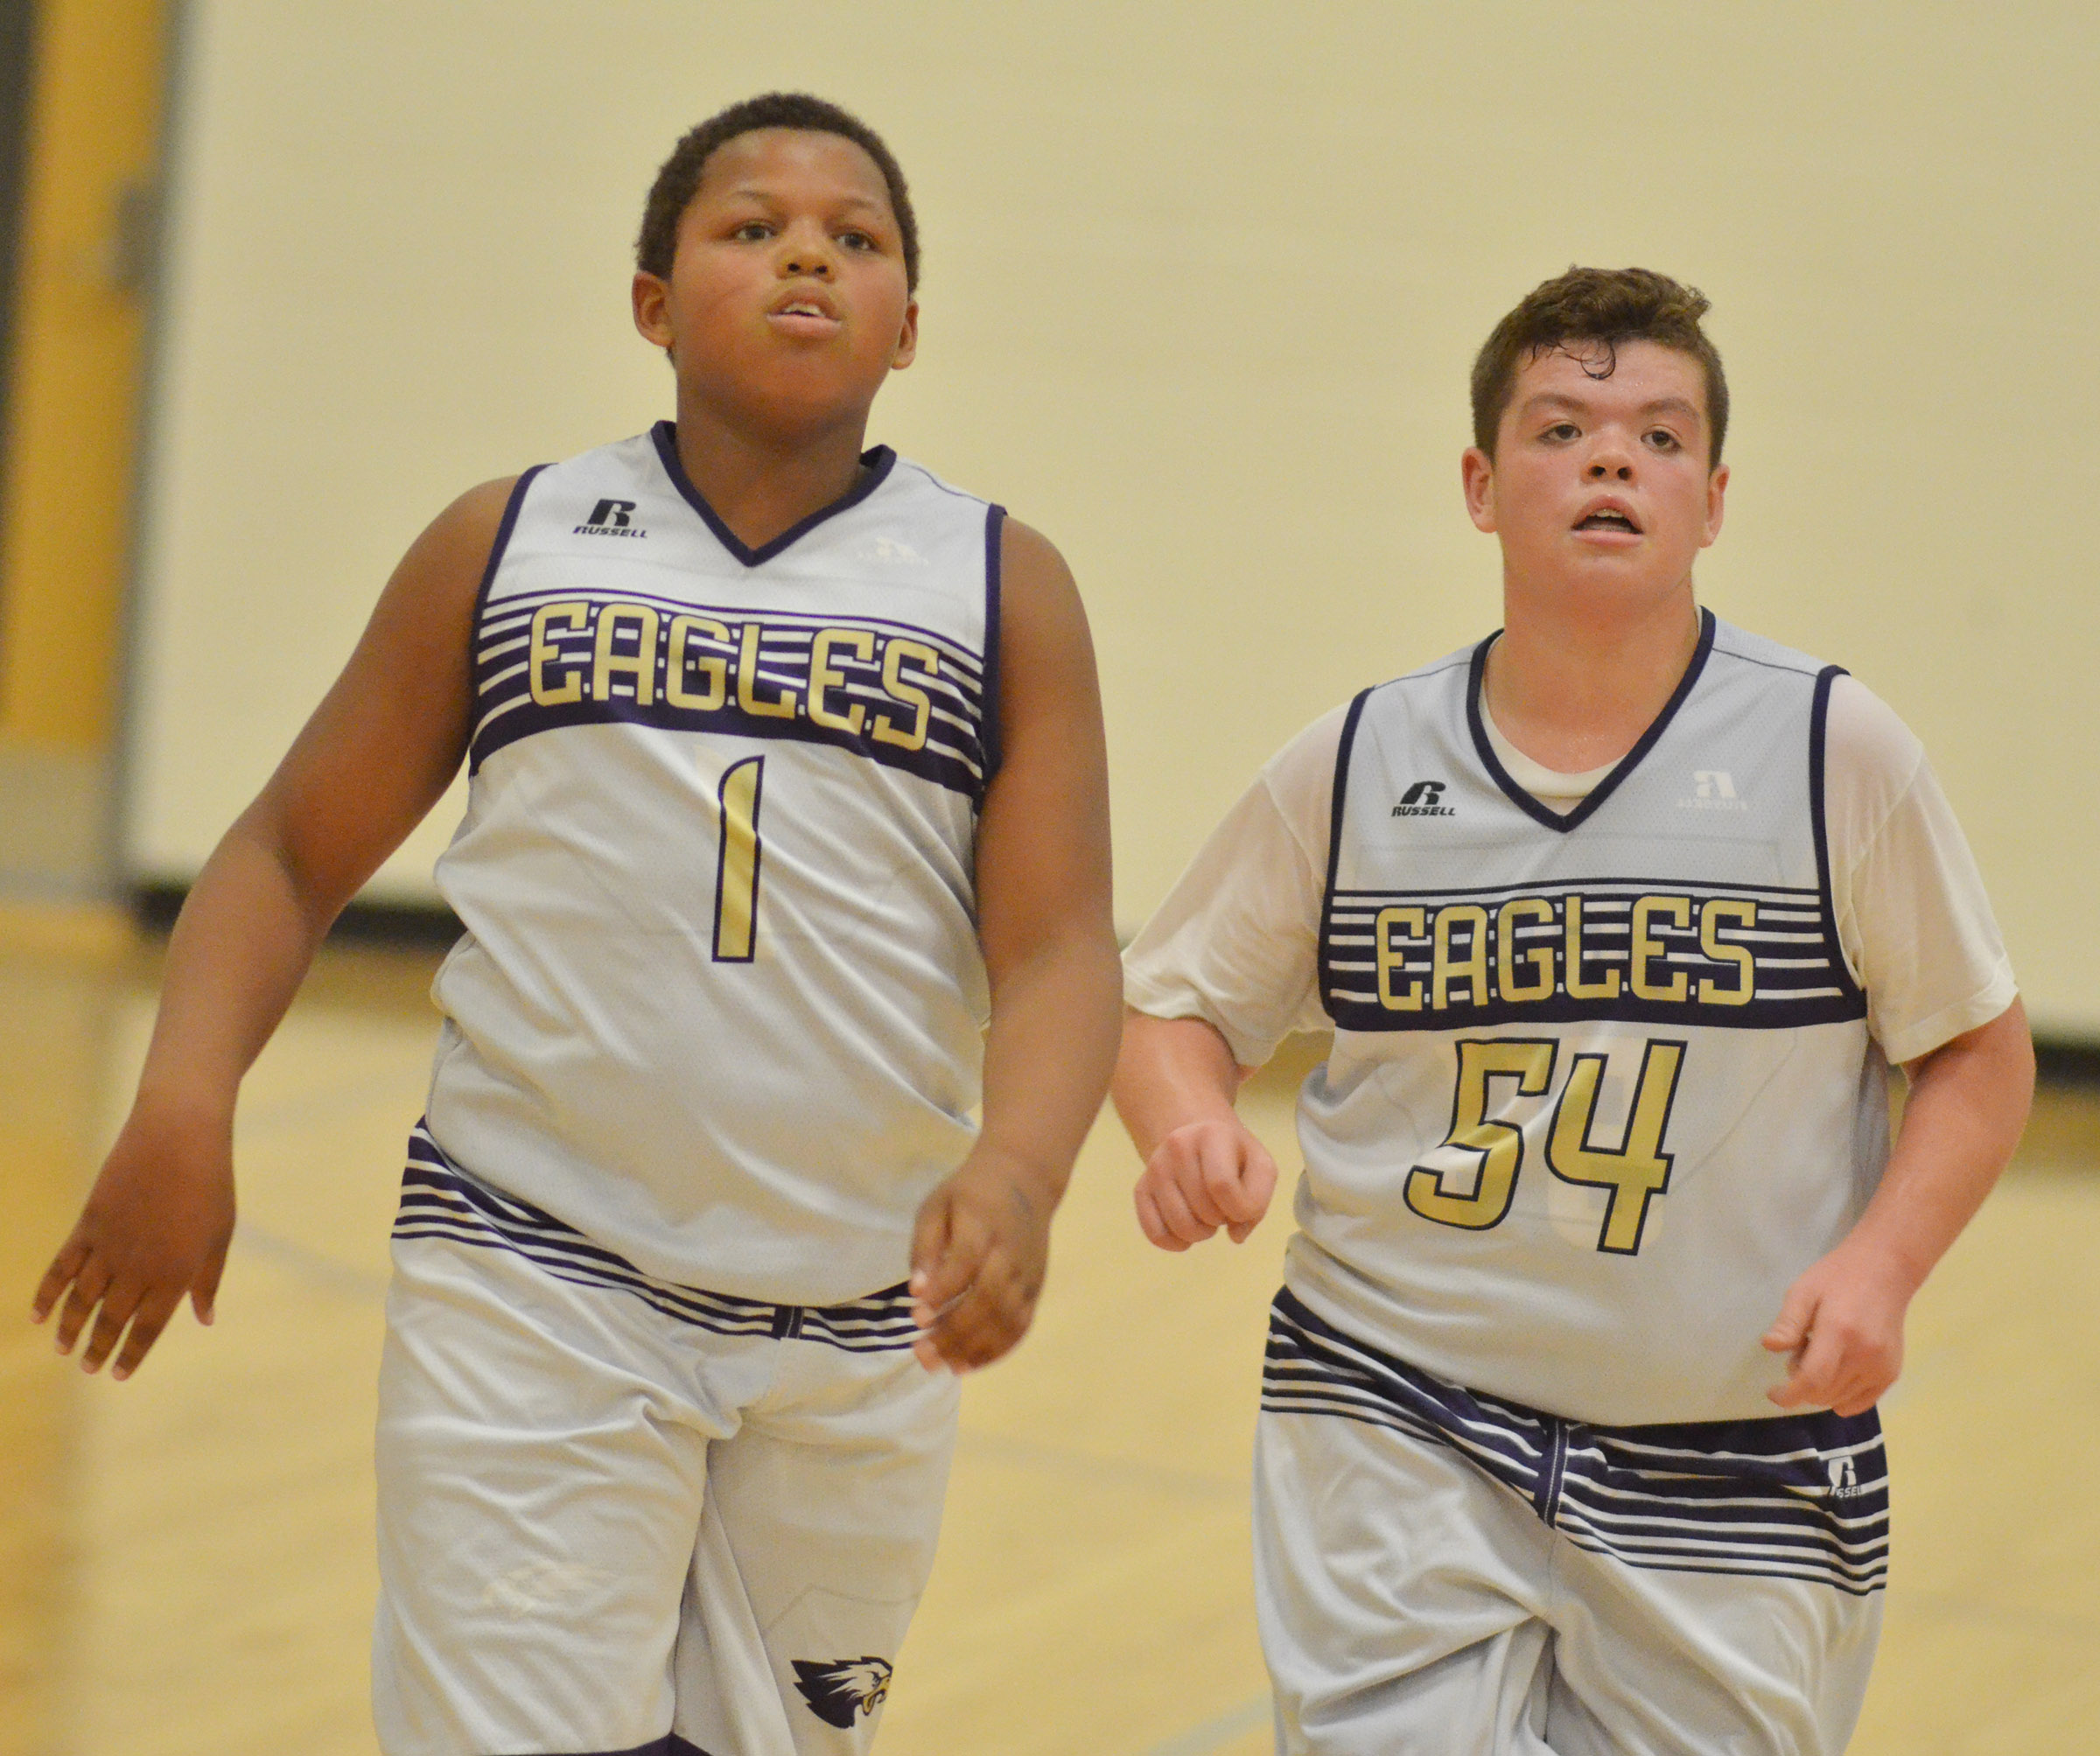 CMS seventh-graders Keondre Weathers, at left, and Hayden Jones run down the court.